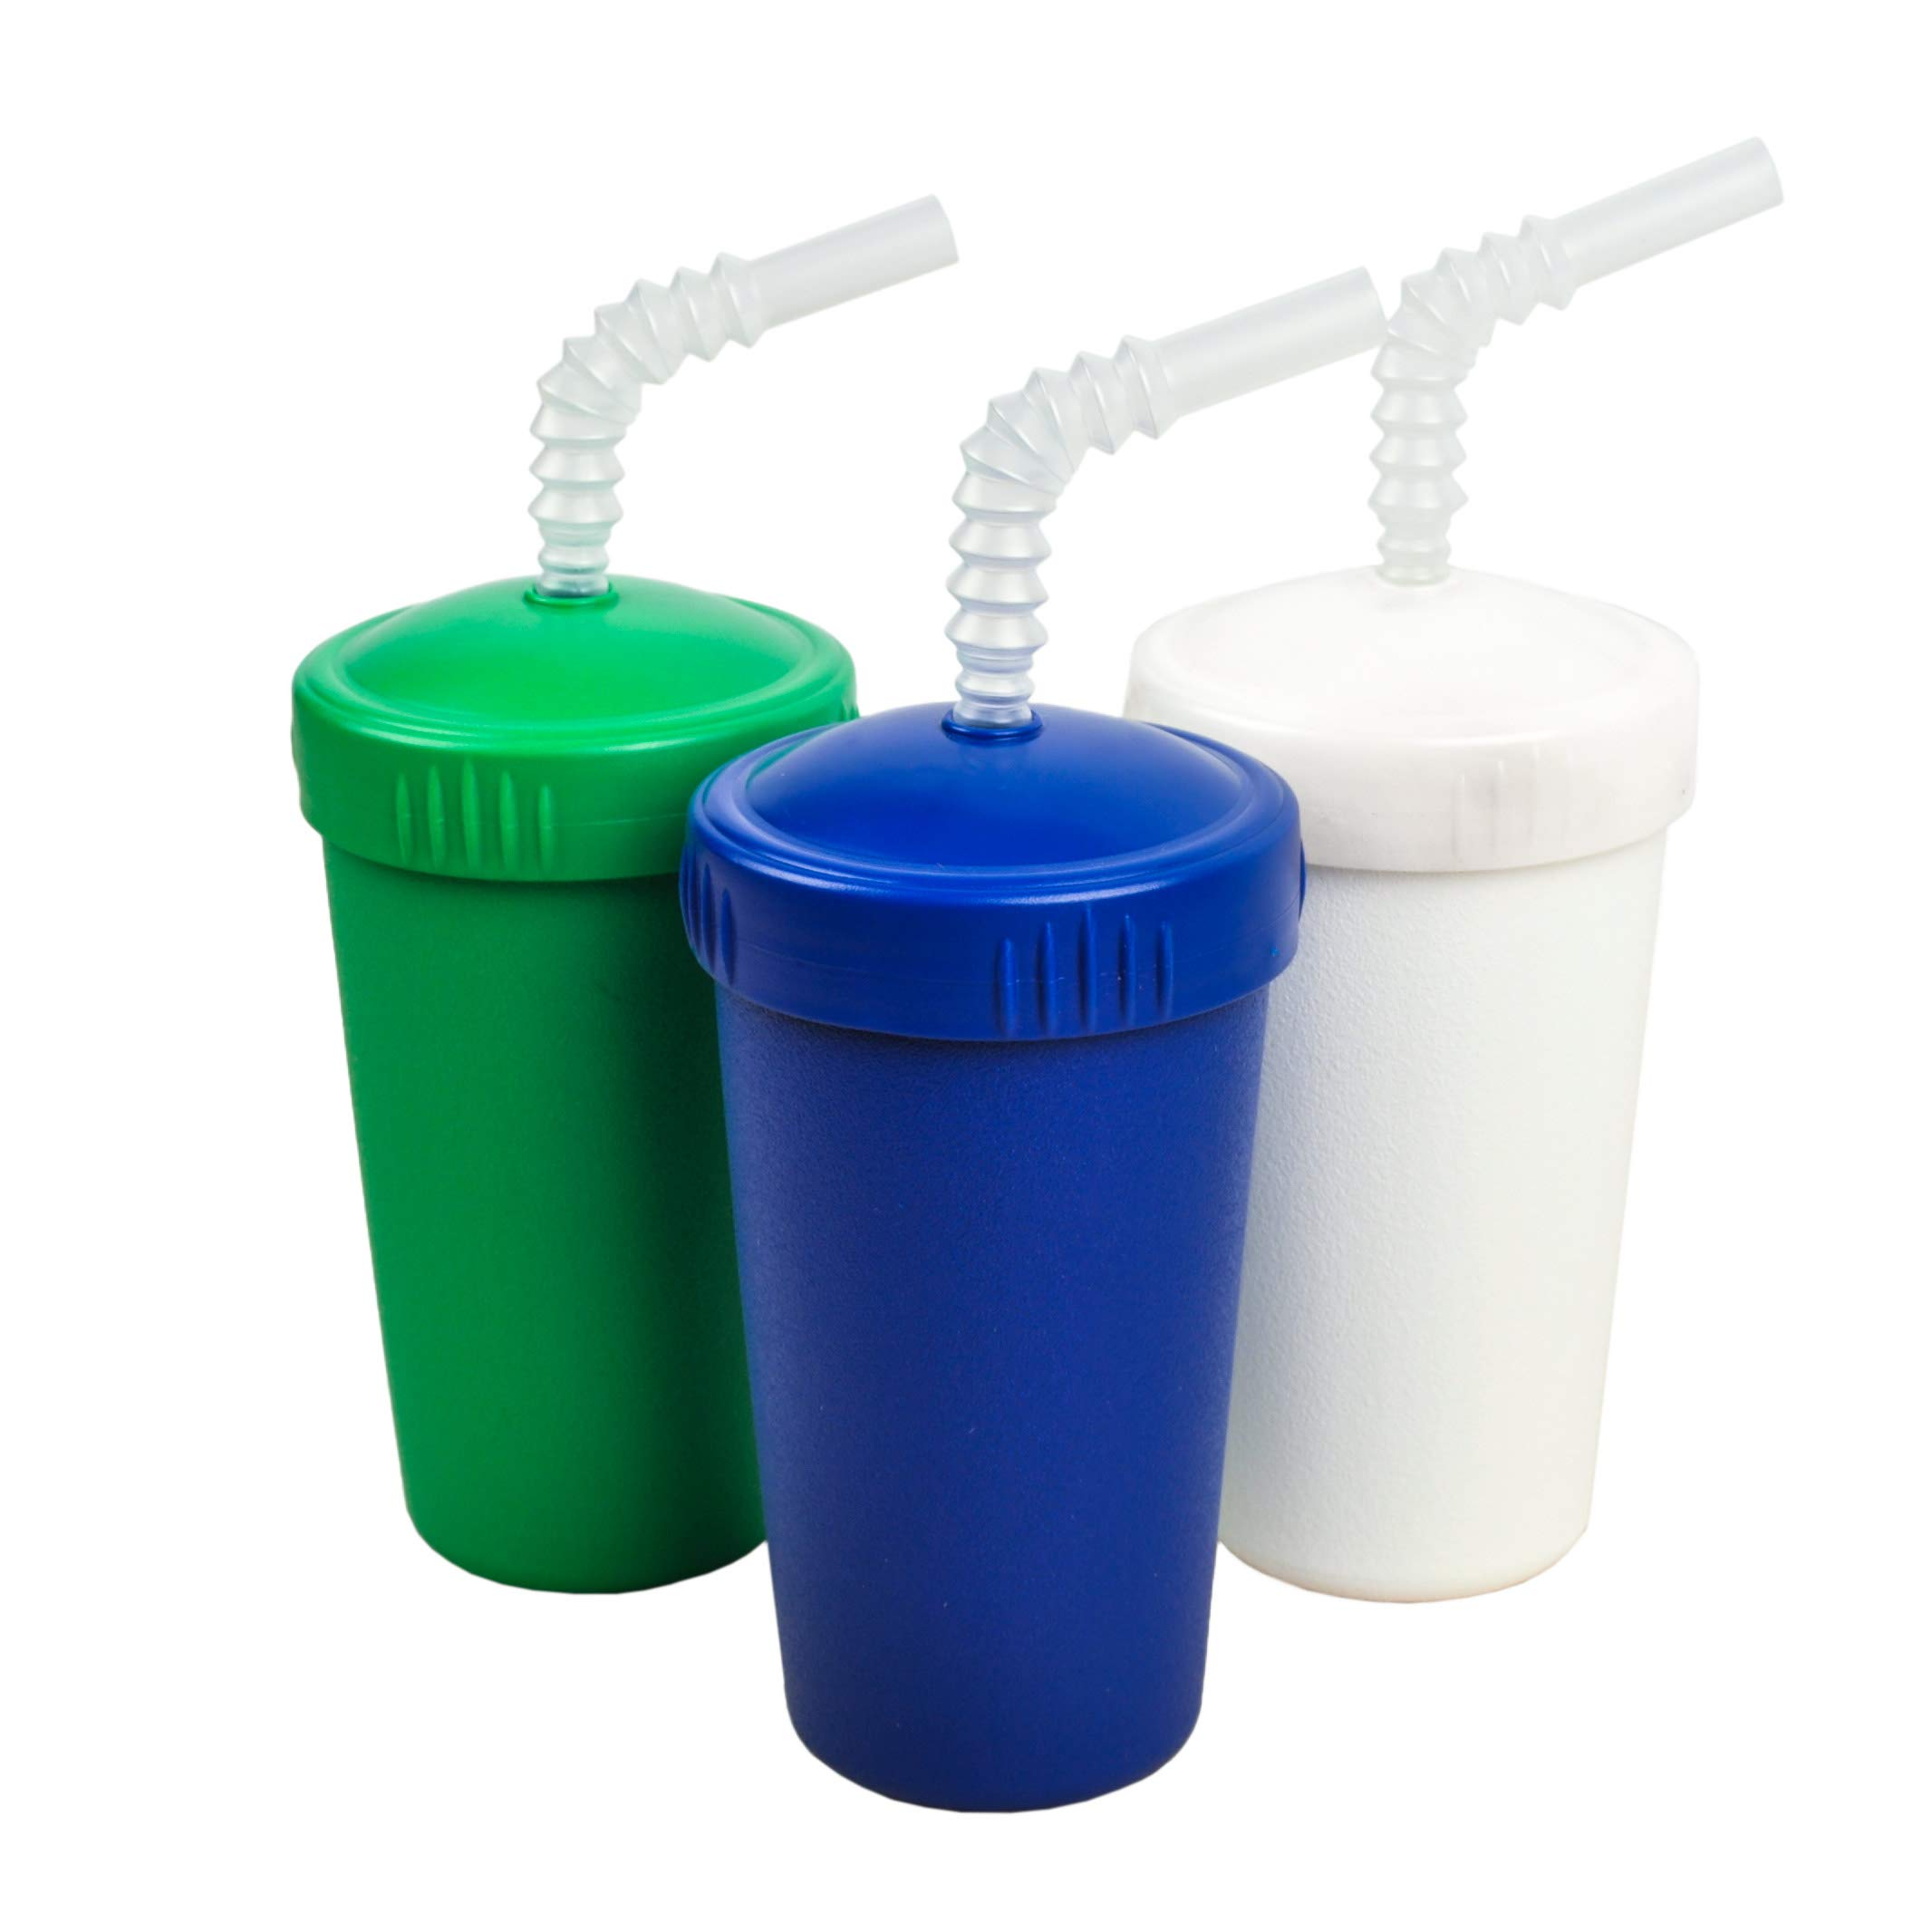 Re-Play Made in USA 3pk Straw Cups with Reversable Straw for Easy Baby, Toddler, Child Feeding - Kelly Green, White, Navy (Nautical)